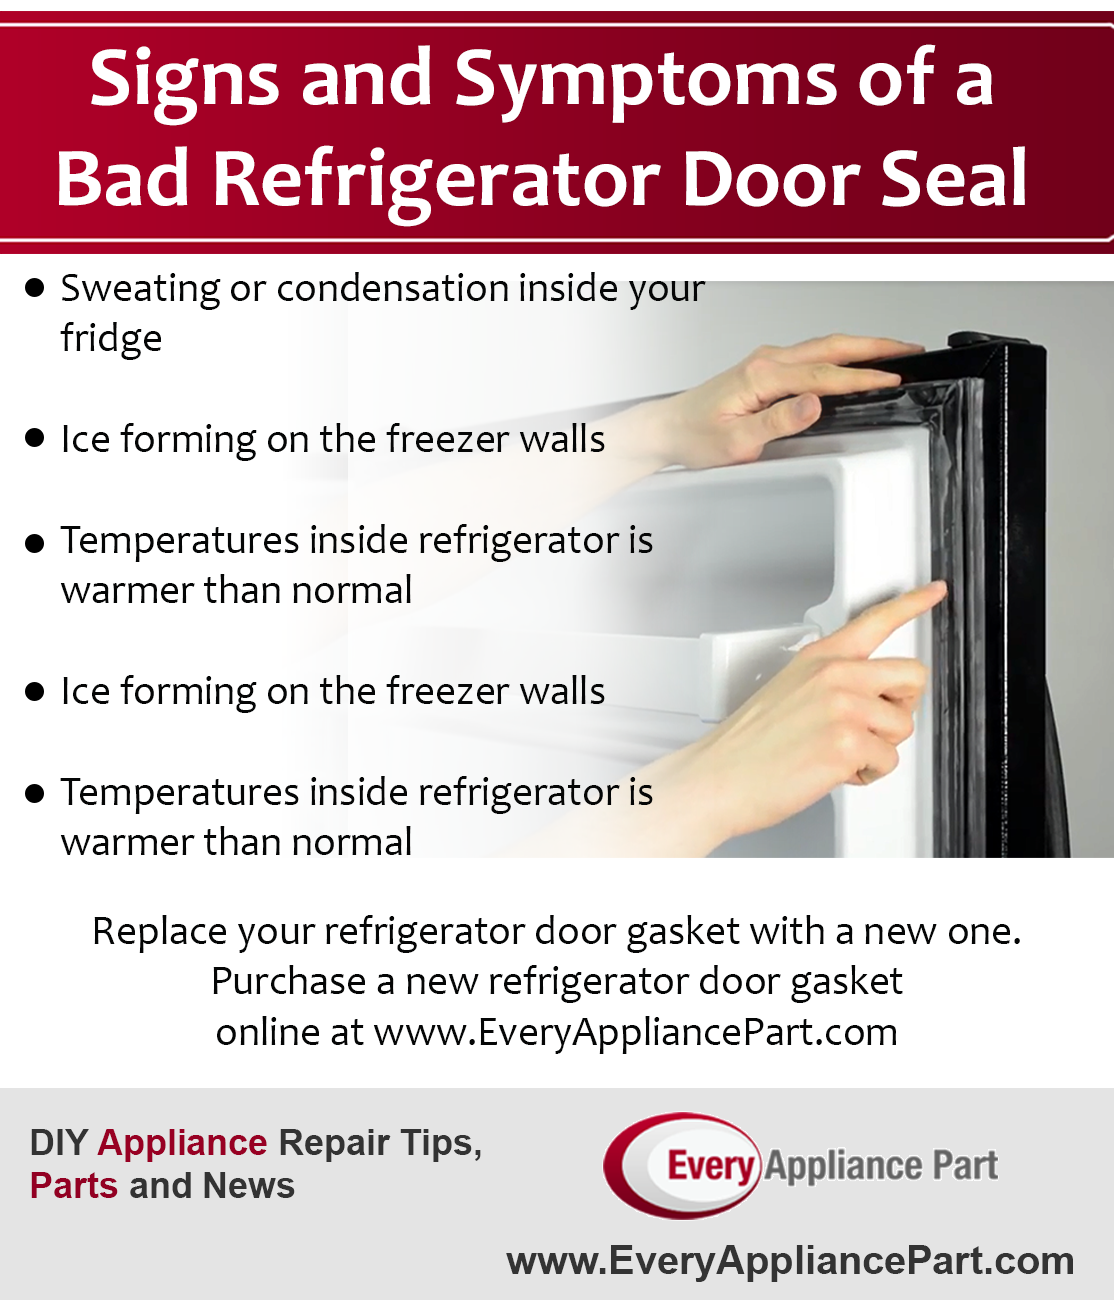 How To Replace And Repair A Refrigerator Door Seal Or Gasket Door Seals Refrigerator Door Repair